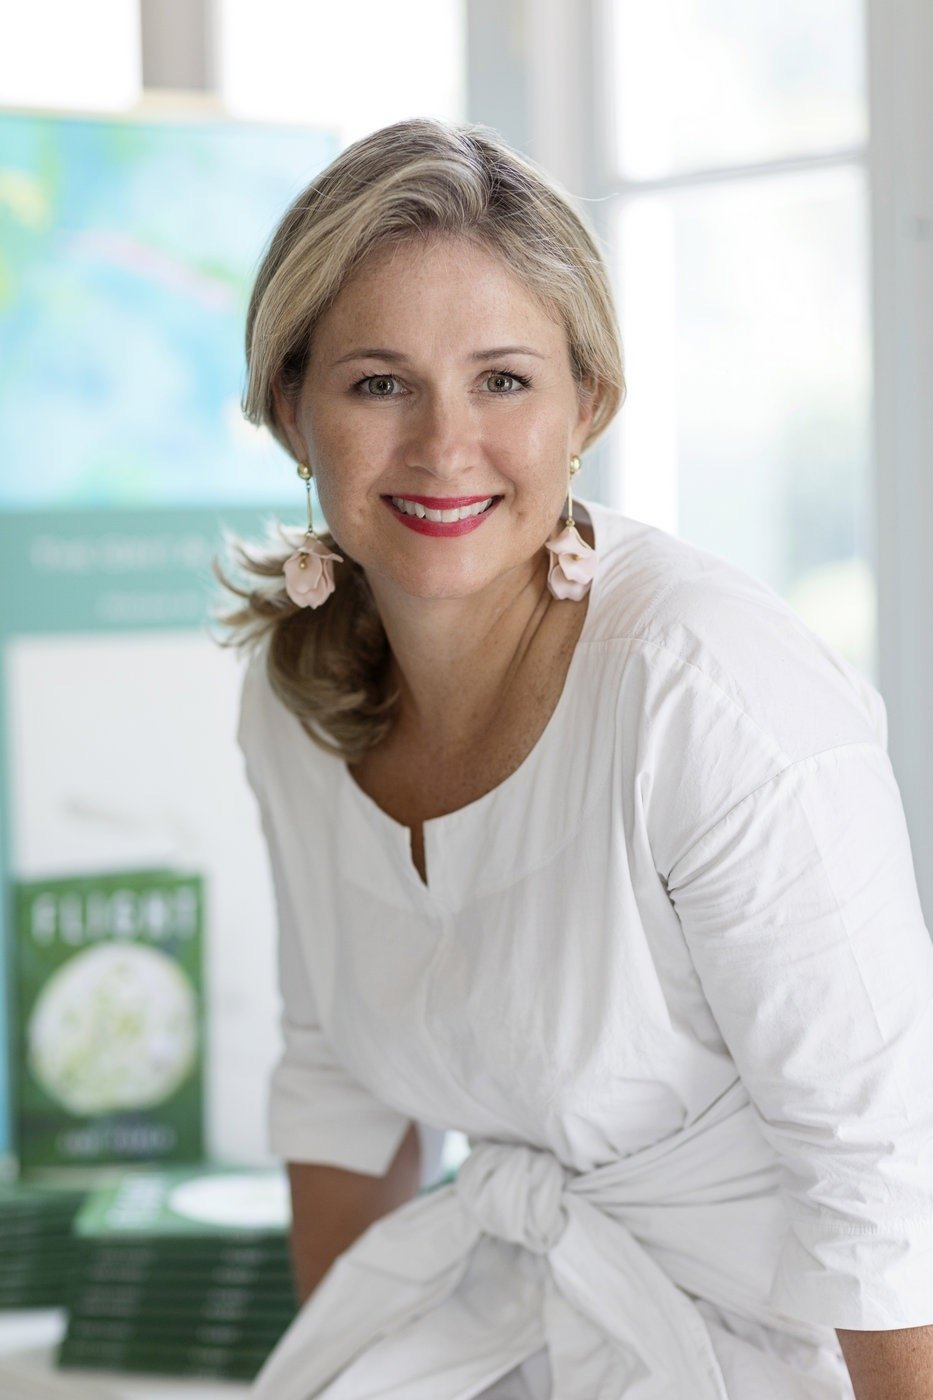 AUTHOR ANNE POARCH